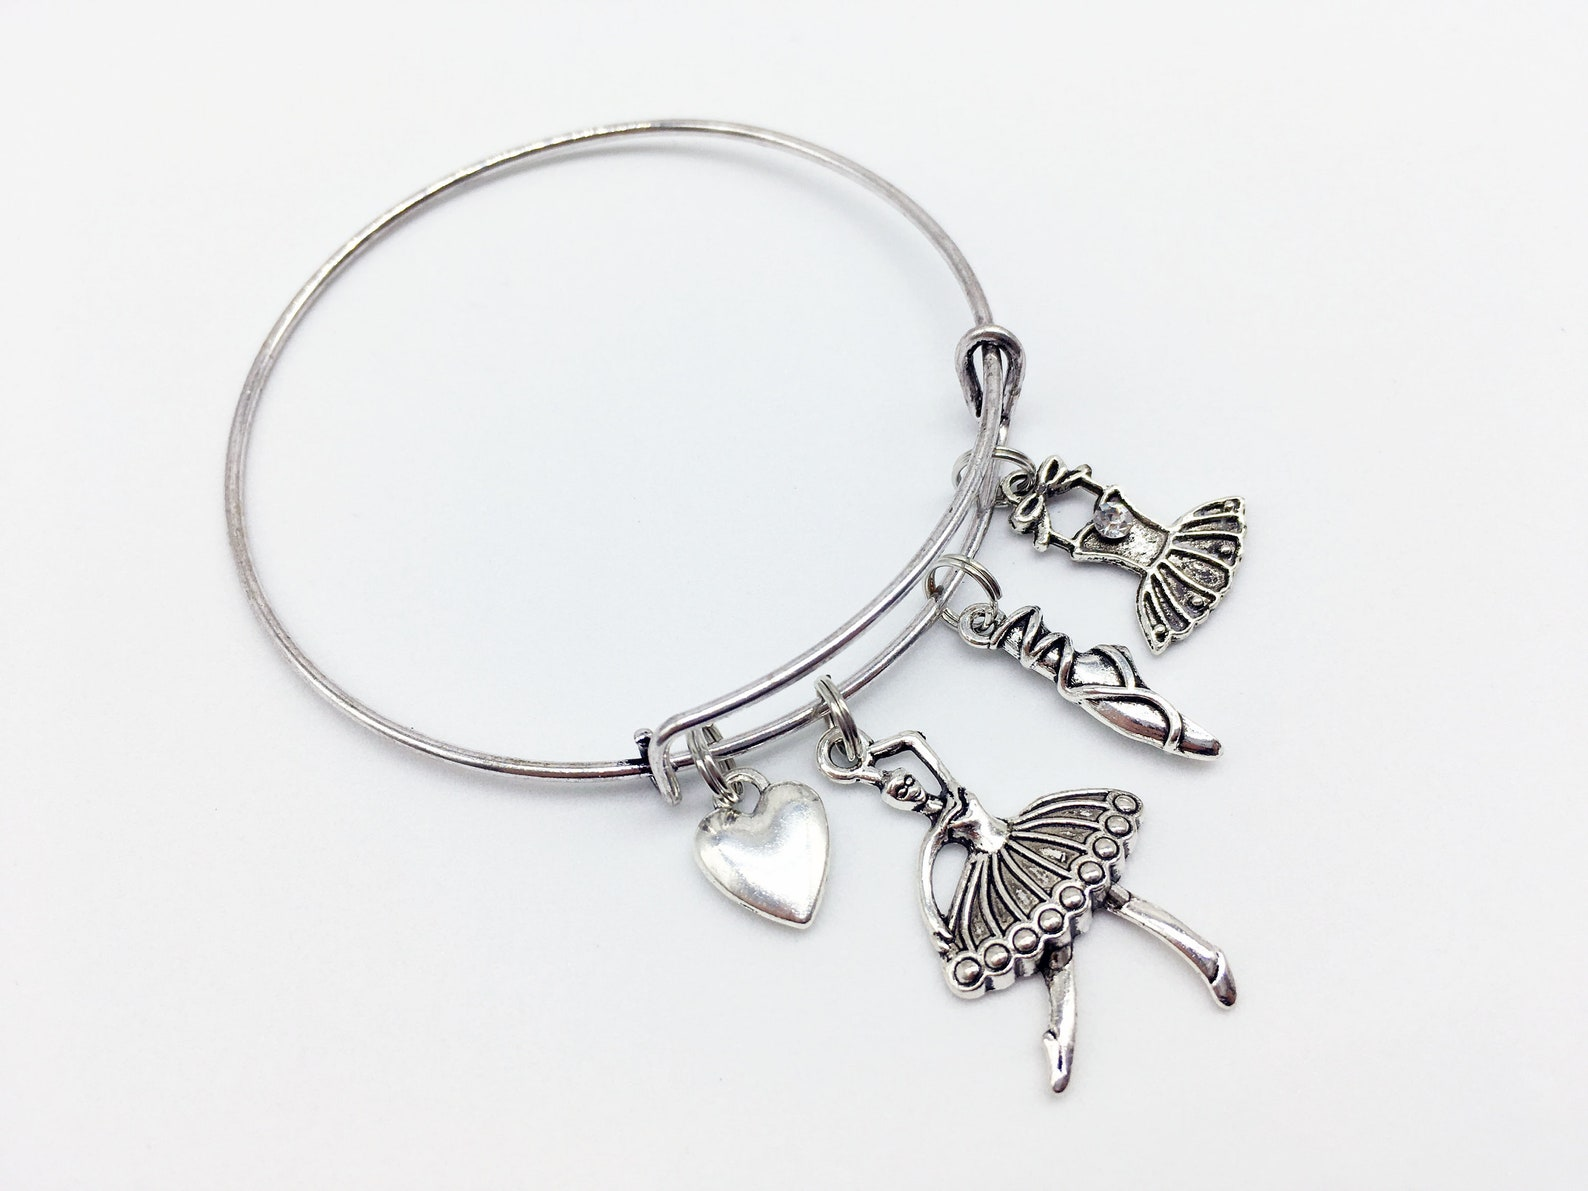 ballet bangle ballet jewelry ballet gift pointe shoe tutu ballet dancer ballet pendant ballerina bangle ballerina bracelet balle